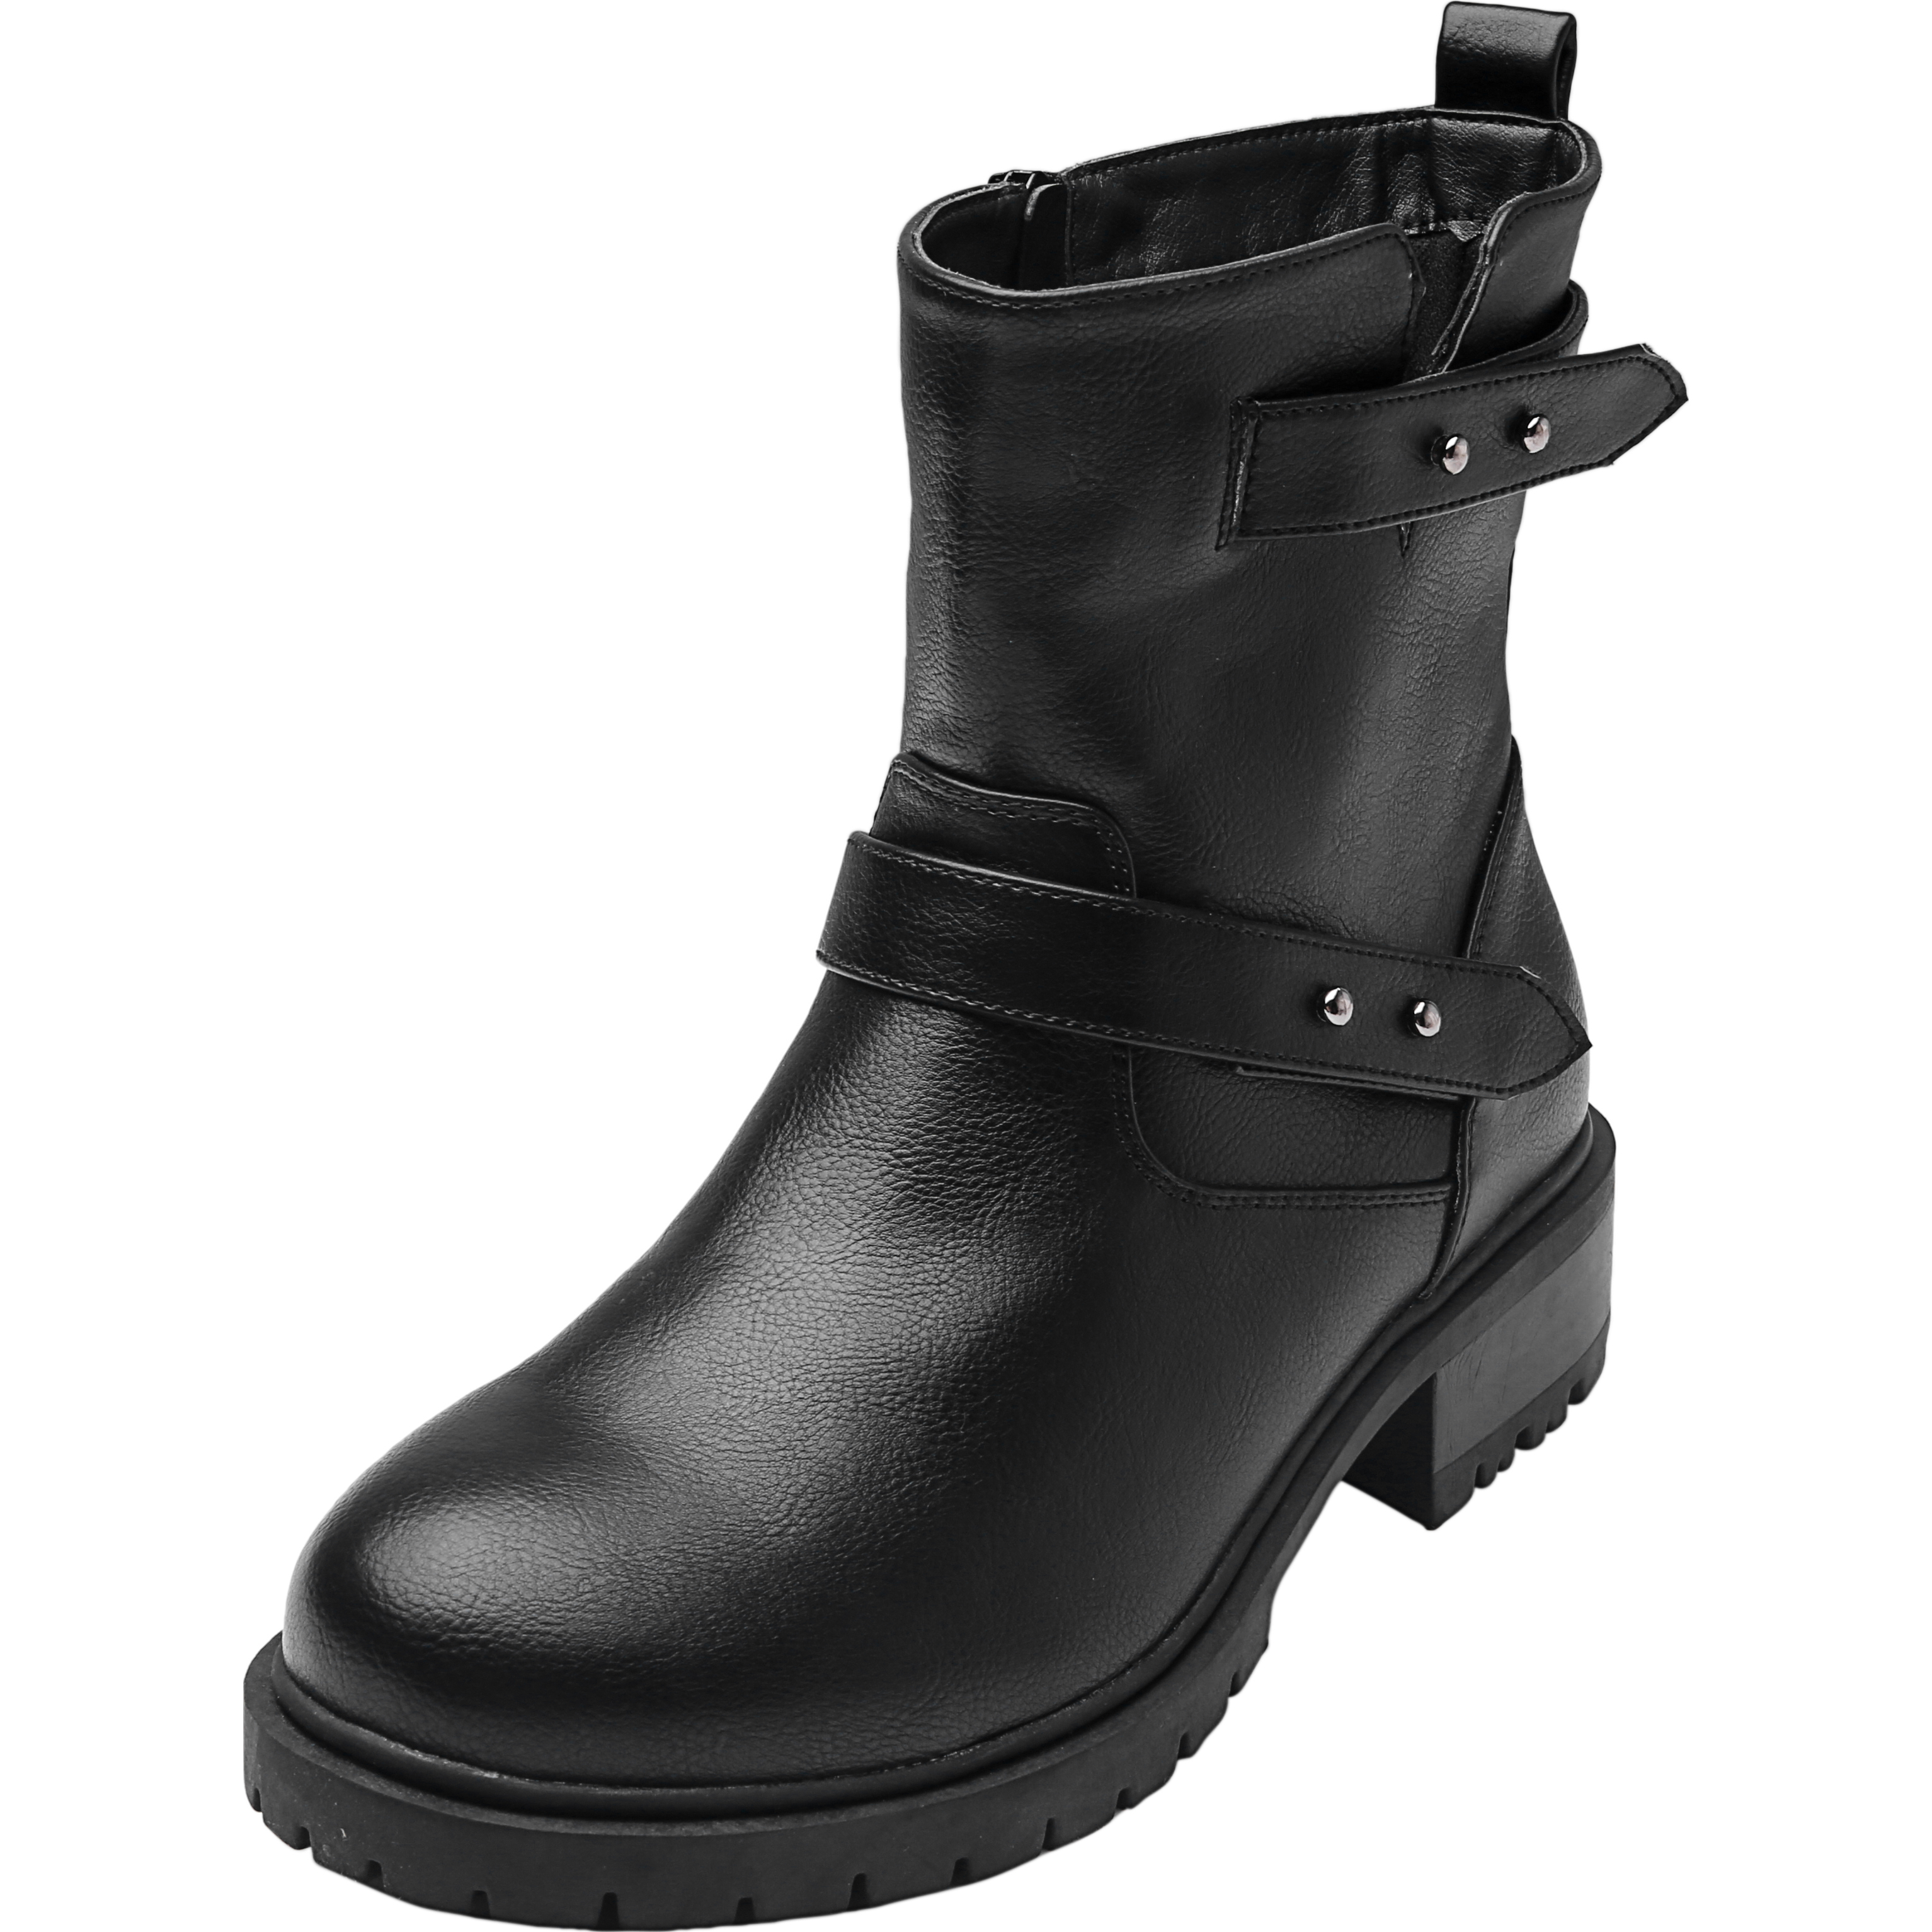 7e5e834eddf Women's Wide Width Combat Boots - Chunky Block Low Heel Back Pull-tabBuckle  Slip On Side Zipper Cozy Comfortable Work Shoes.